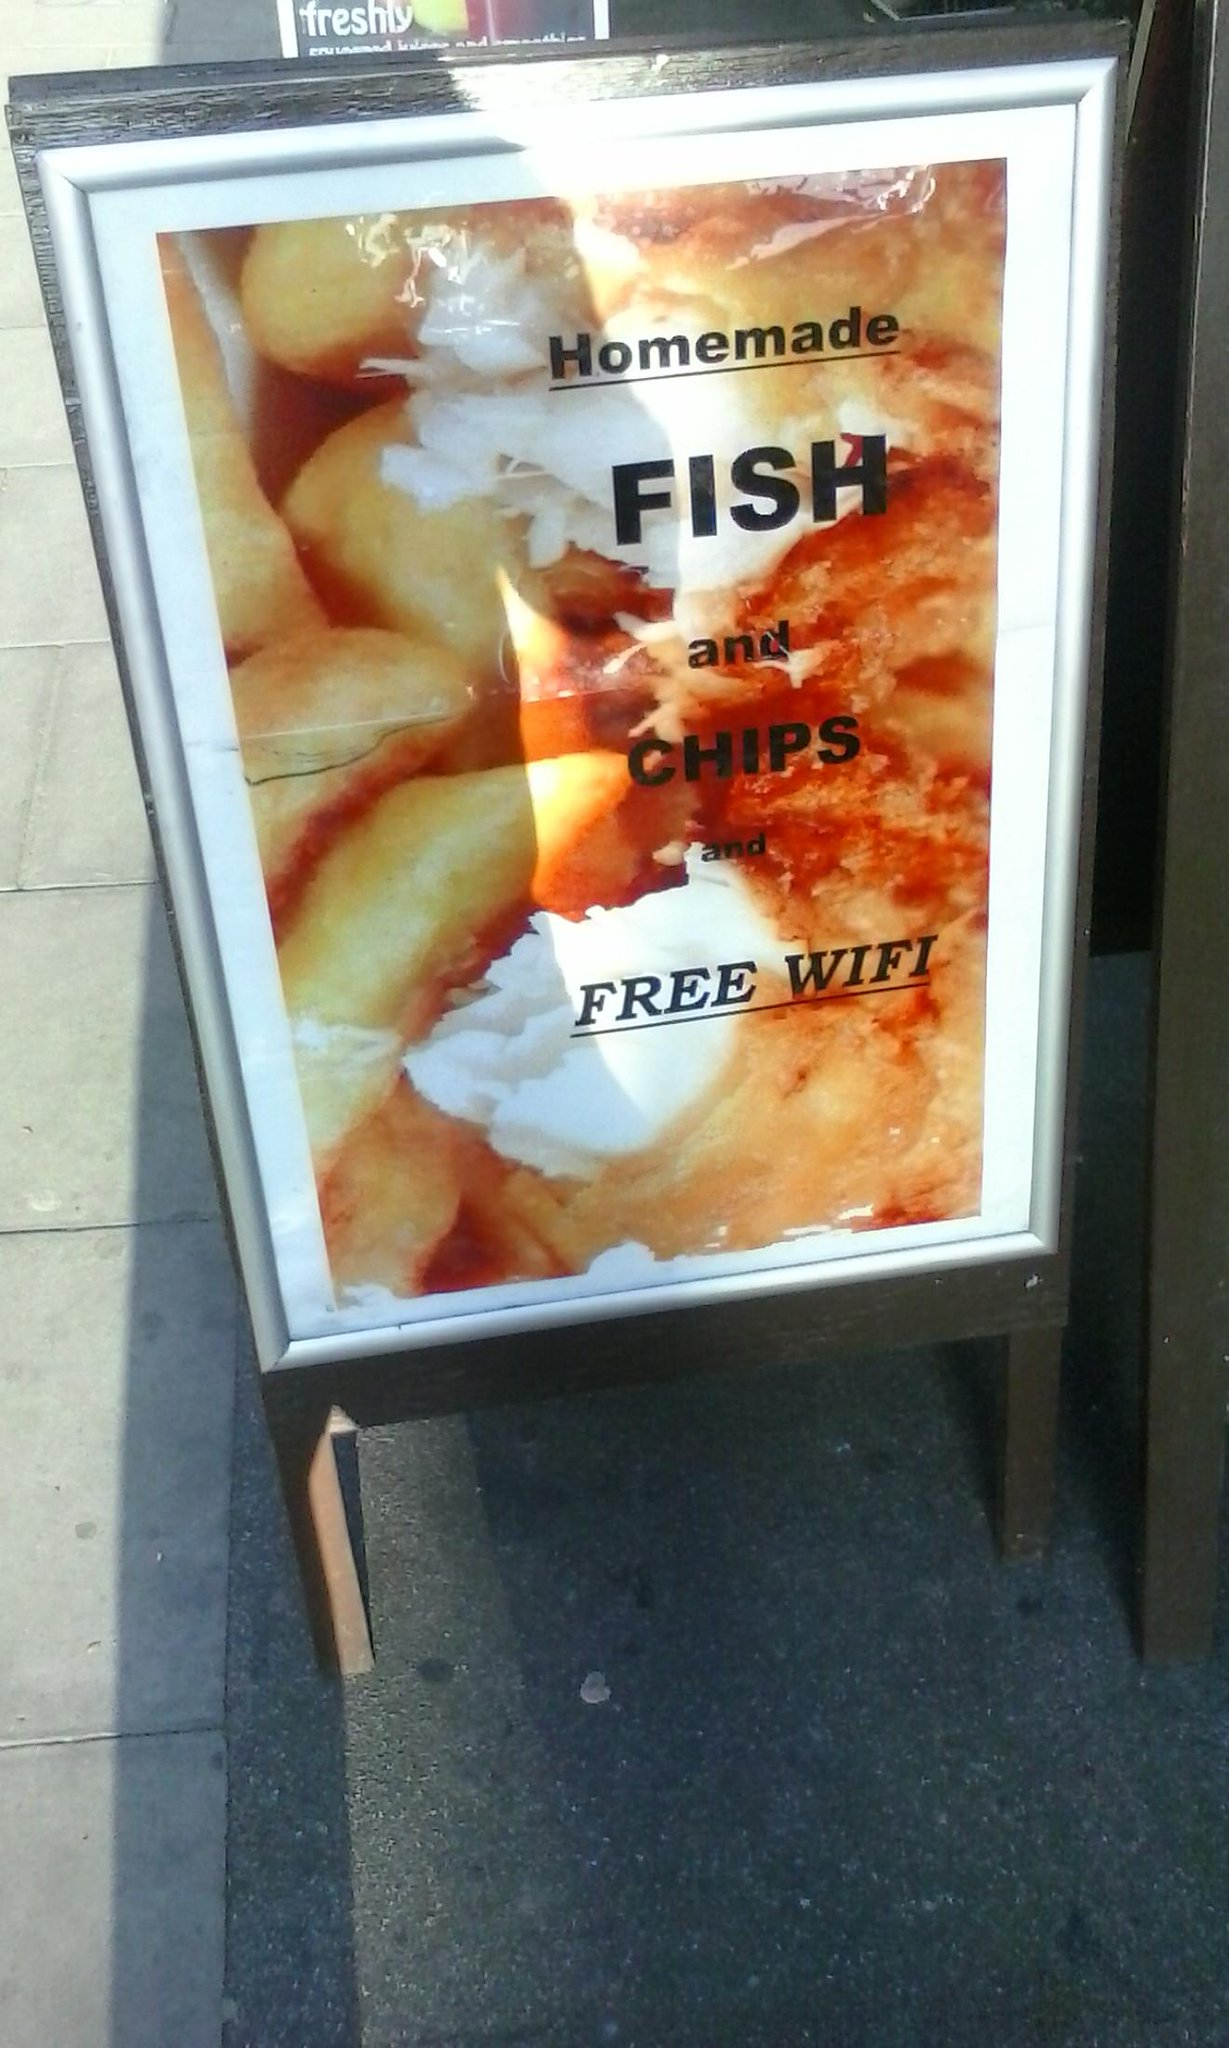 RT @CHIMPOMCR: Bit more WiFi on my chips please luv http://t.co/7Sm0ylSkTc